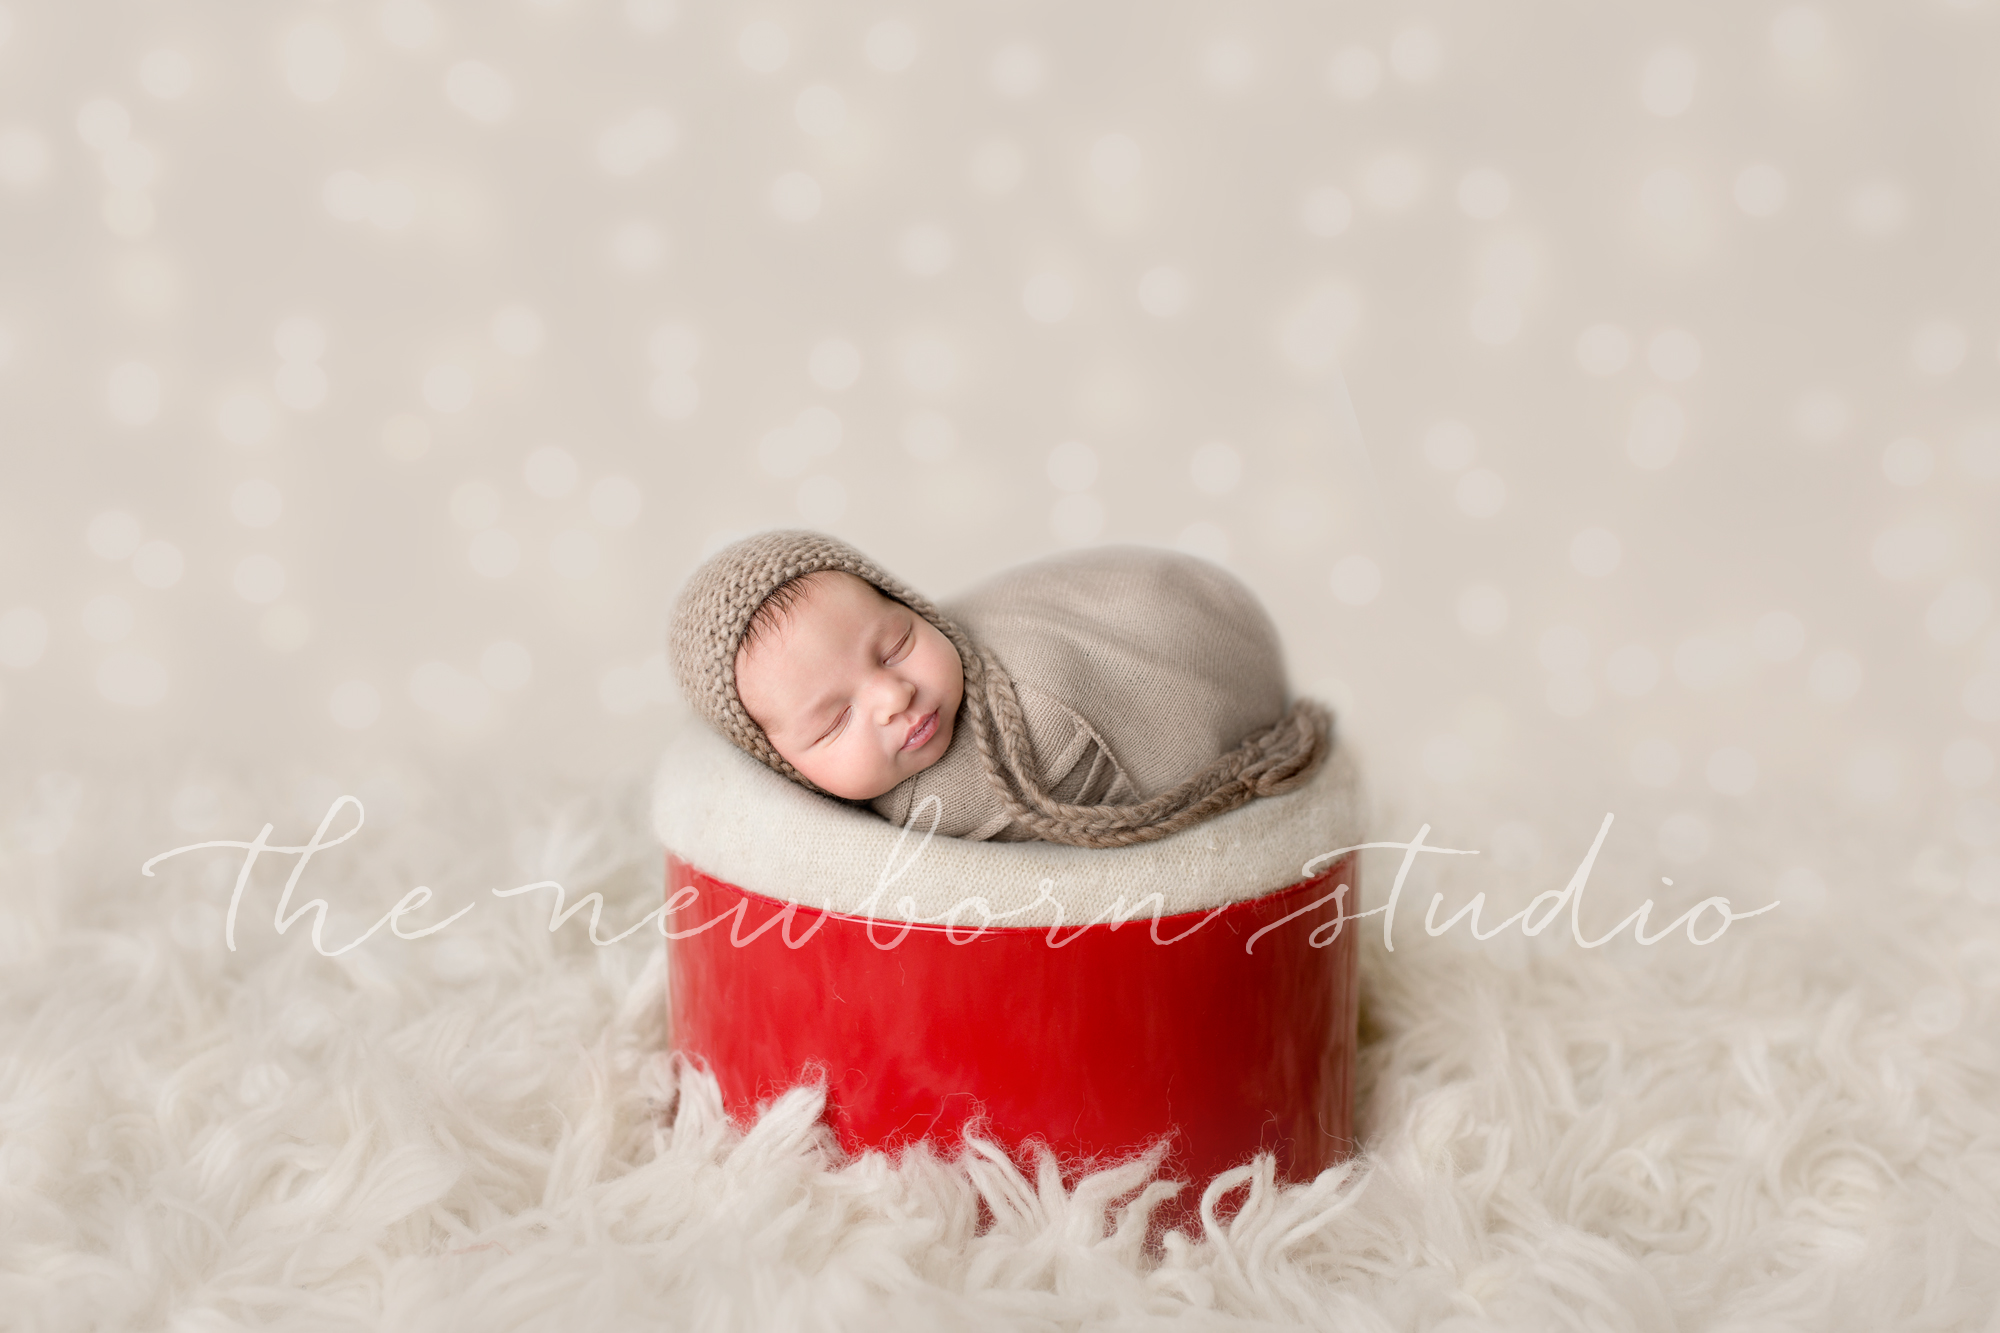 Christmas newborn digital backdrop easy